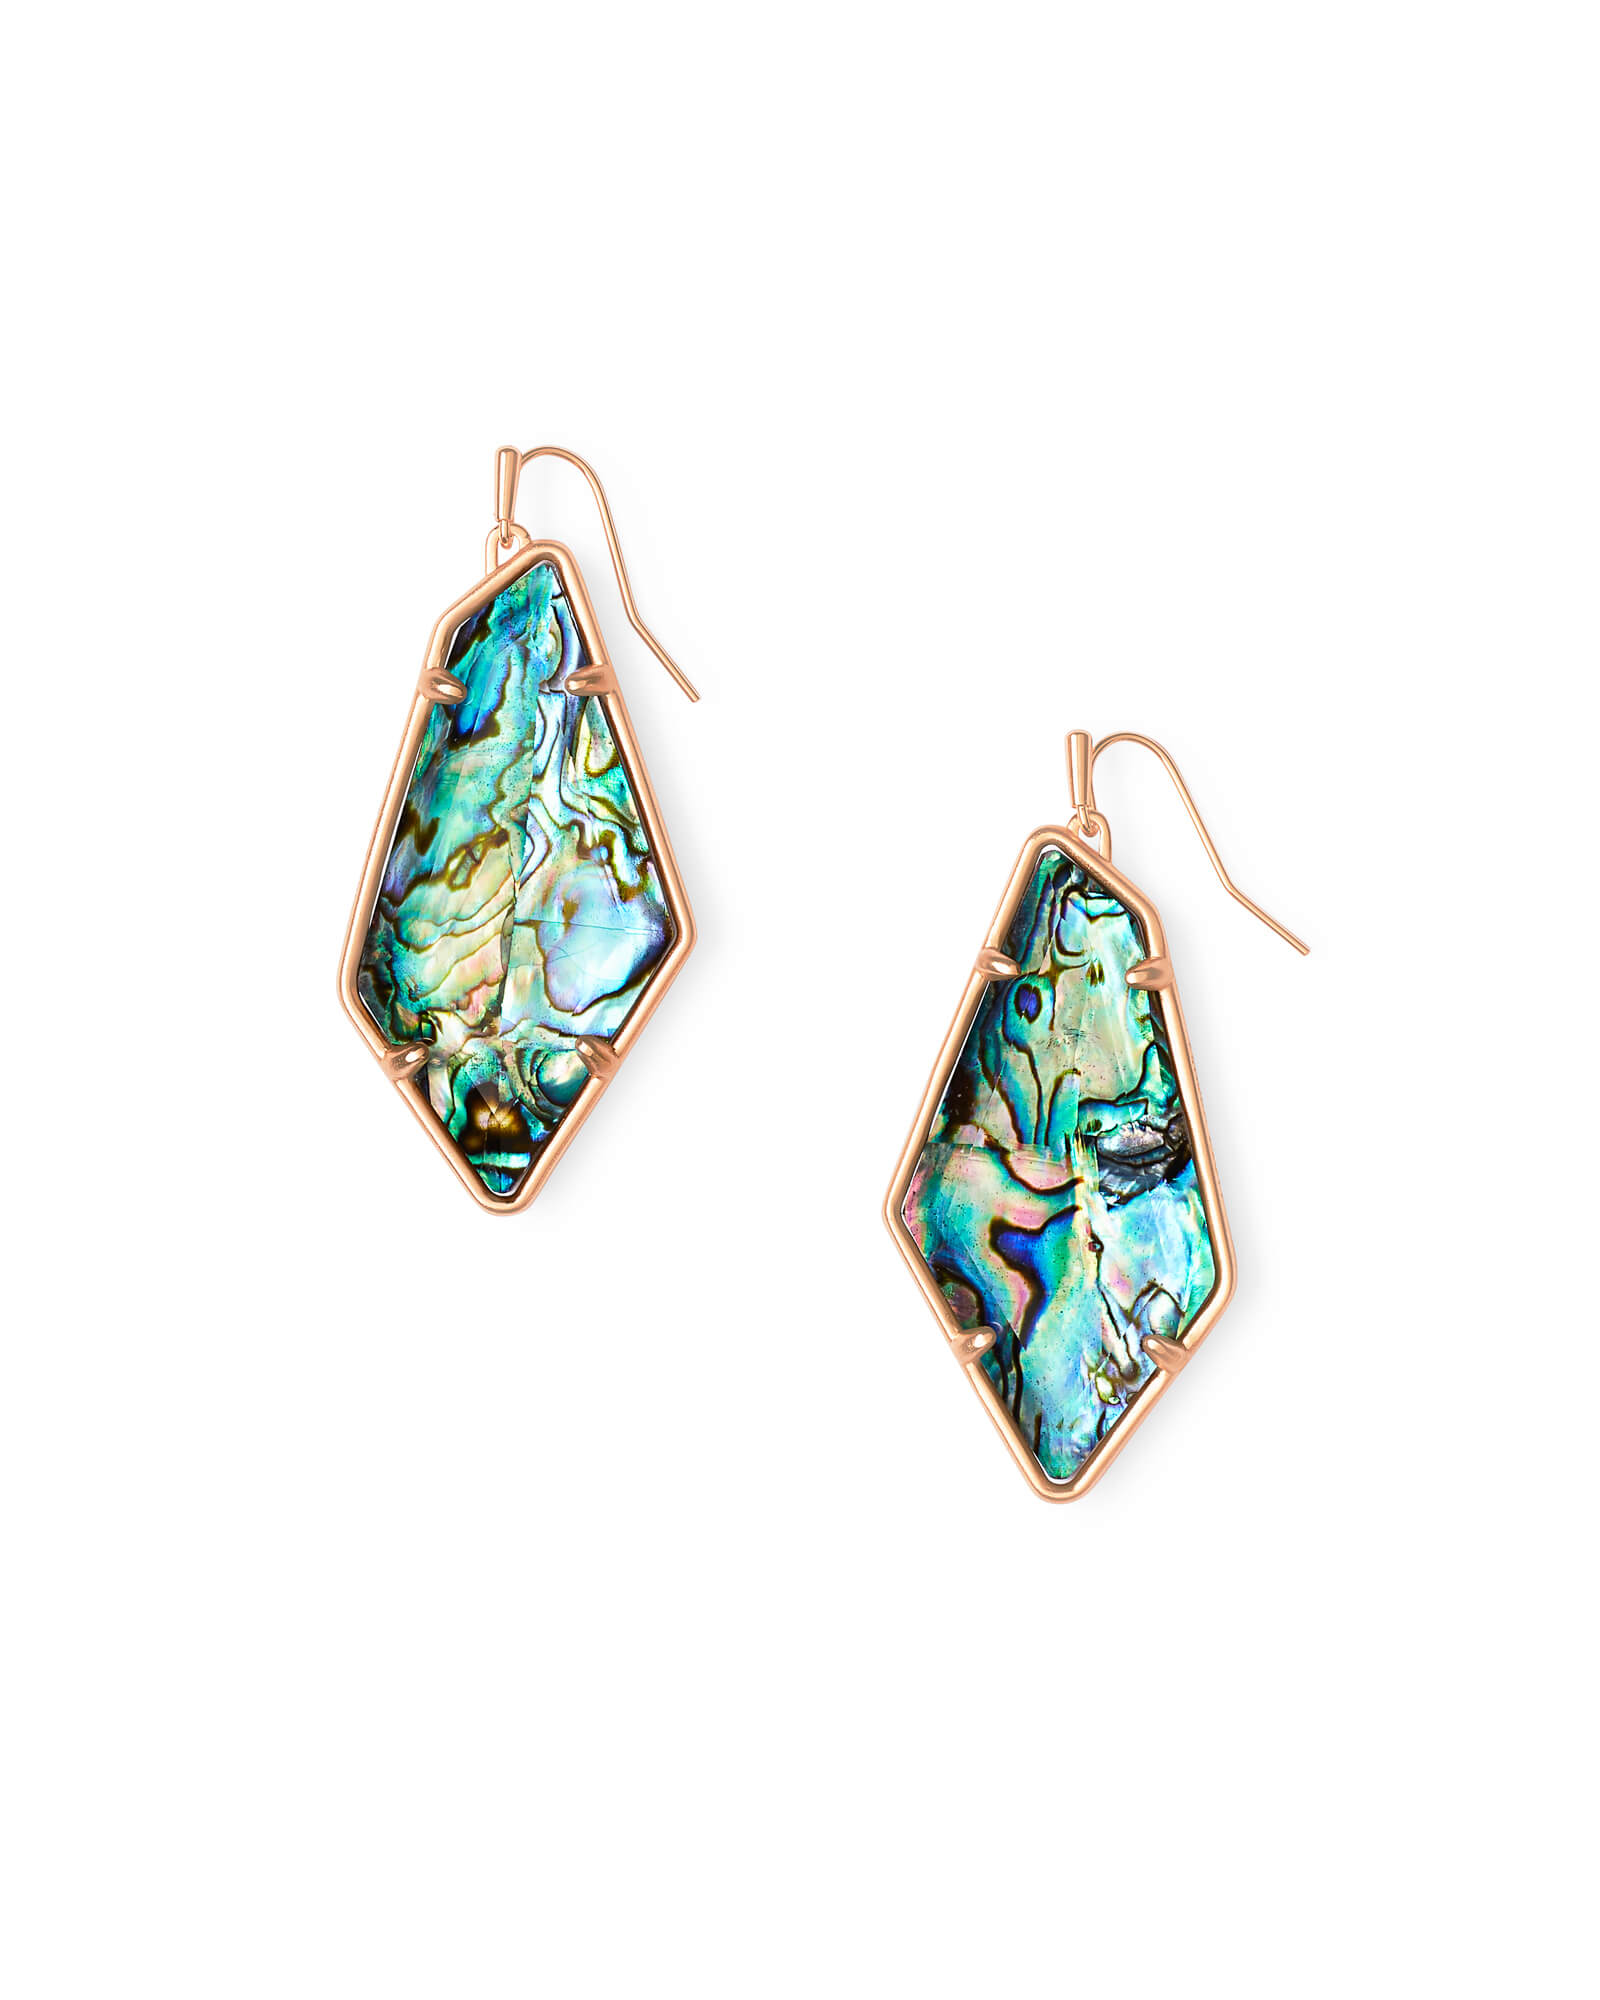 Emmie Rose Gold Drop Earrings in Abalone Shell